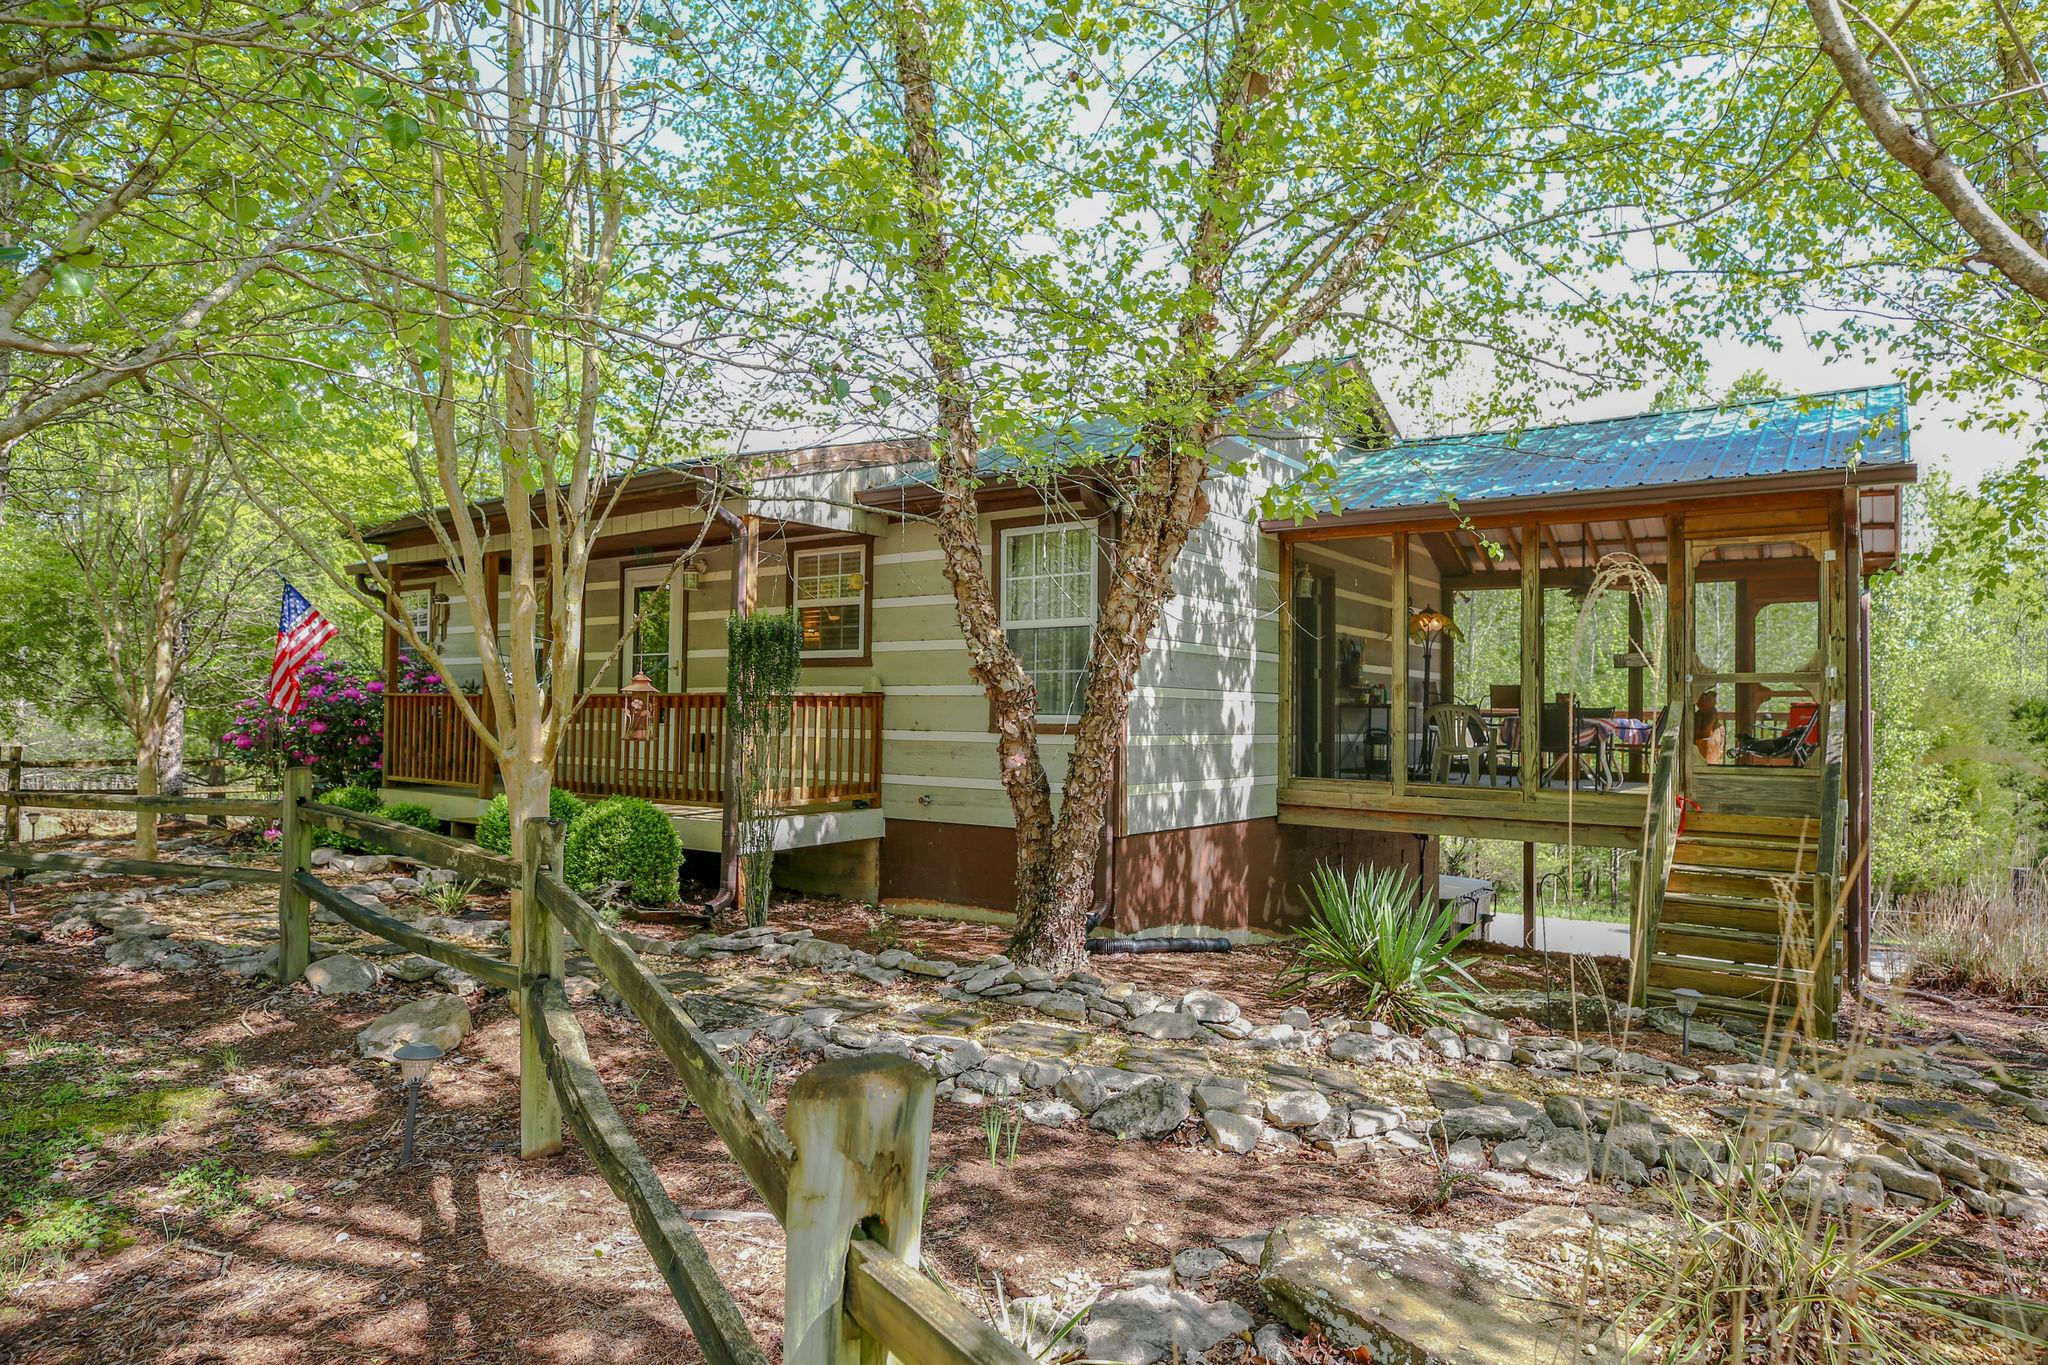 230 August Dr, Smithville, TN 37166 - Smithville, TN real estate listing